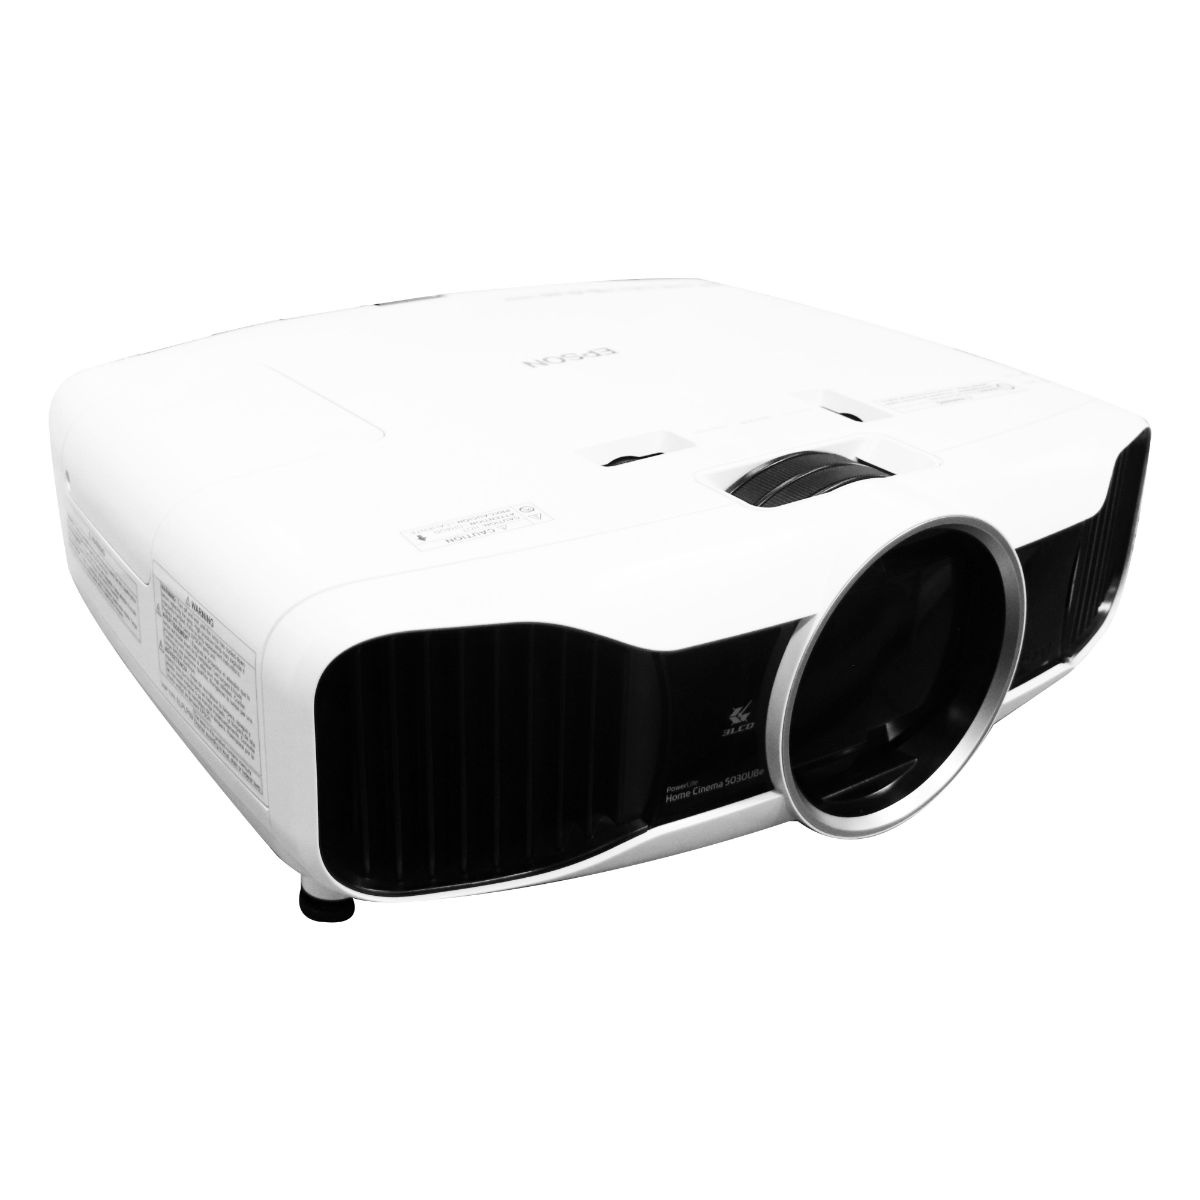 Epson Home Cinema (5030UBe) 1080p 3D 3LCD Home Theater Projector - White